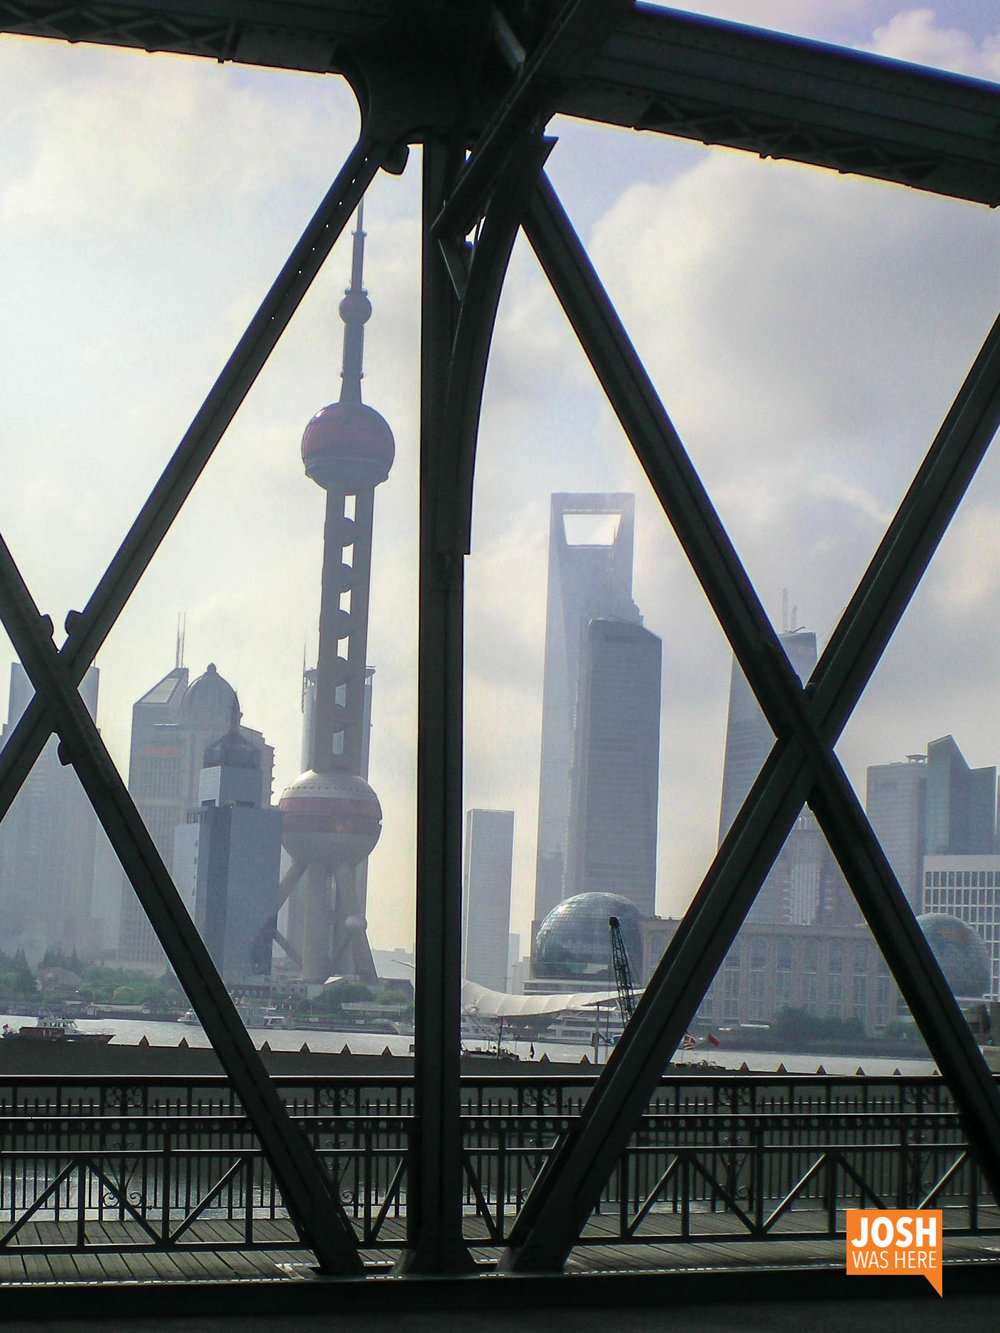 Oriental Pearl TV Tower & Shanghai World Financial Center from Waibaidu Bridge